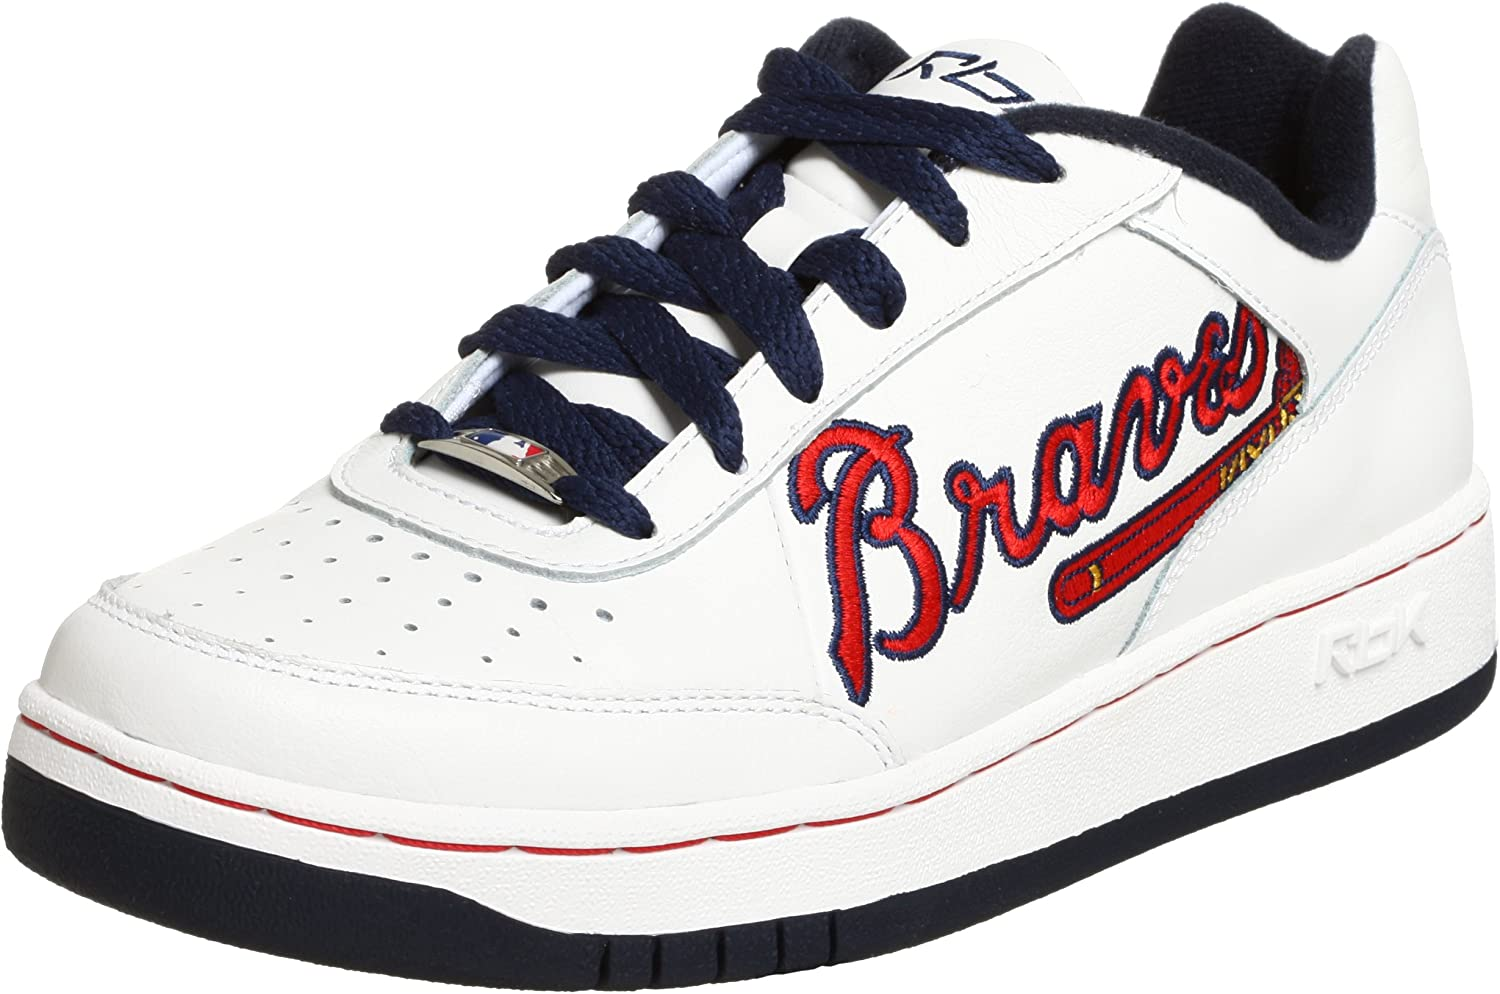 cheapest price professional sale new products Amazon.com: Reebok Men's MLB Braves Clubhouse Oversize Sneaker: Shoes